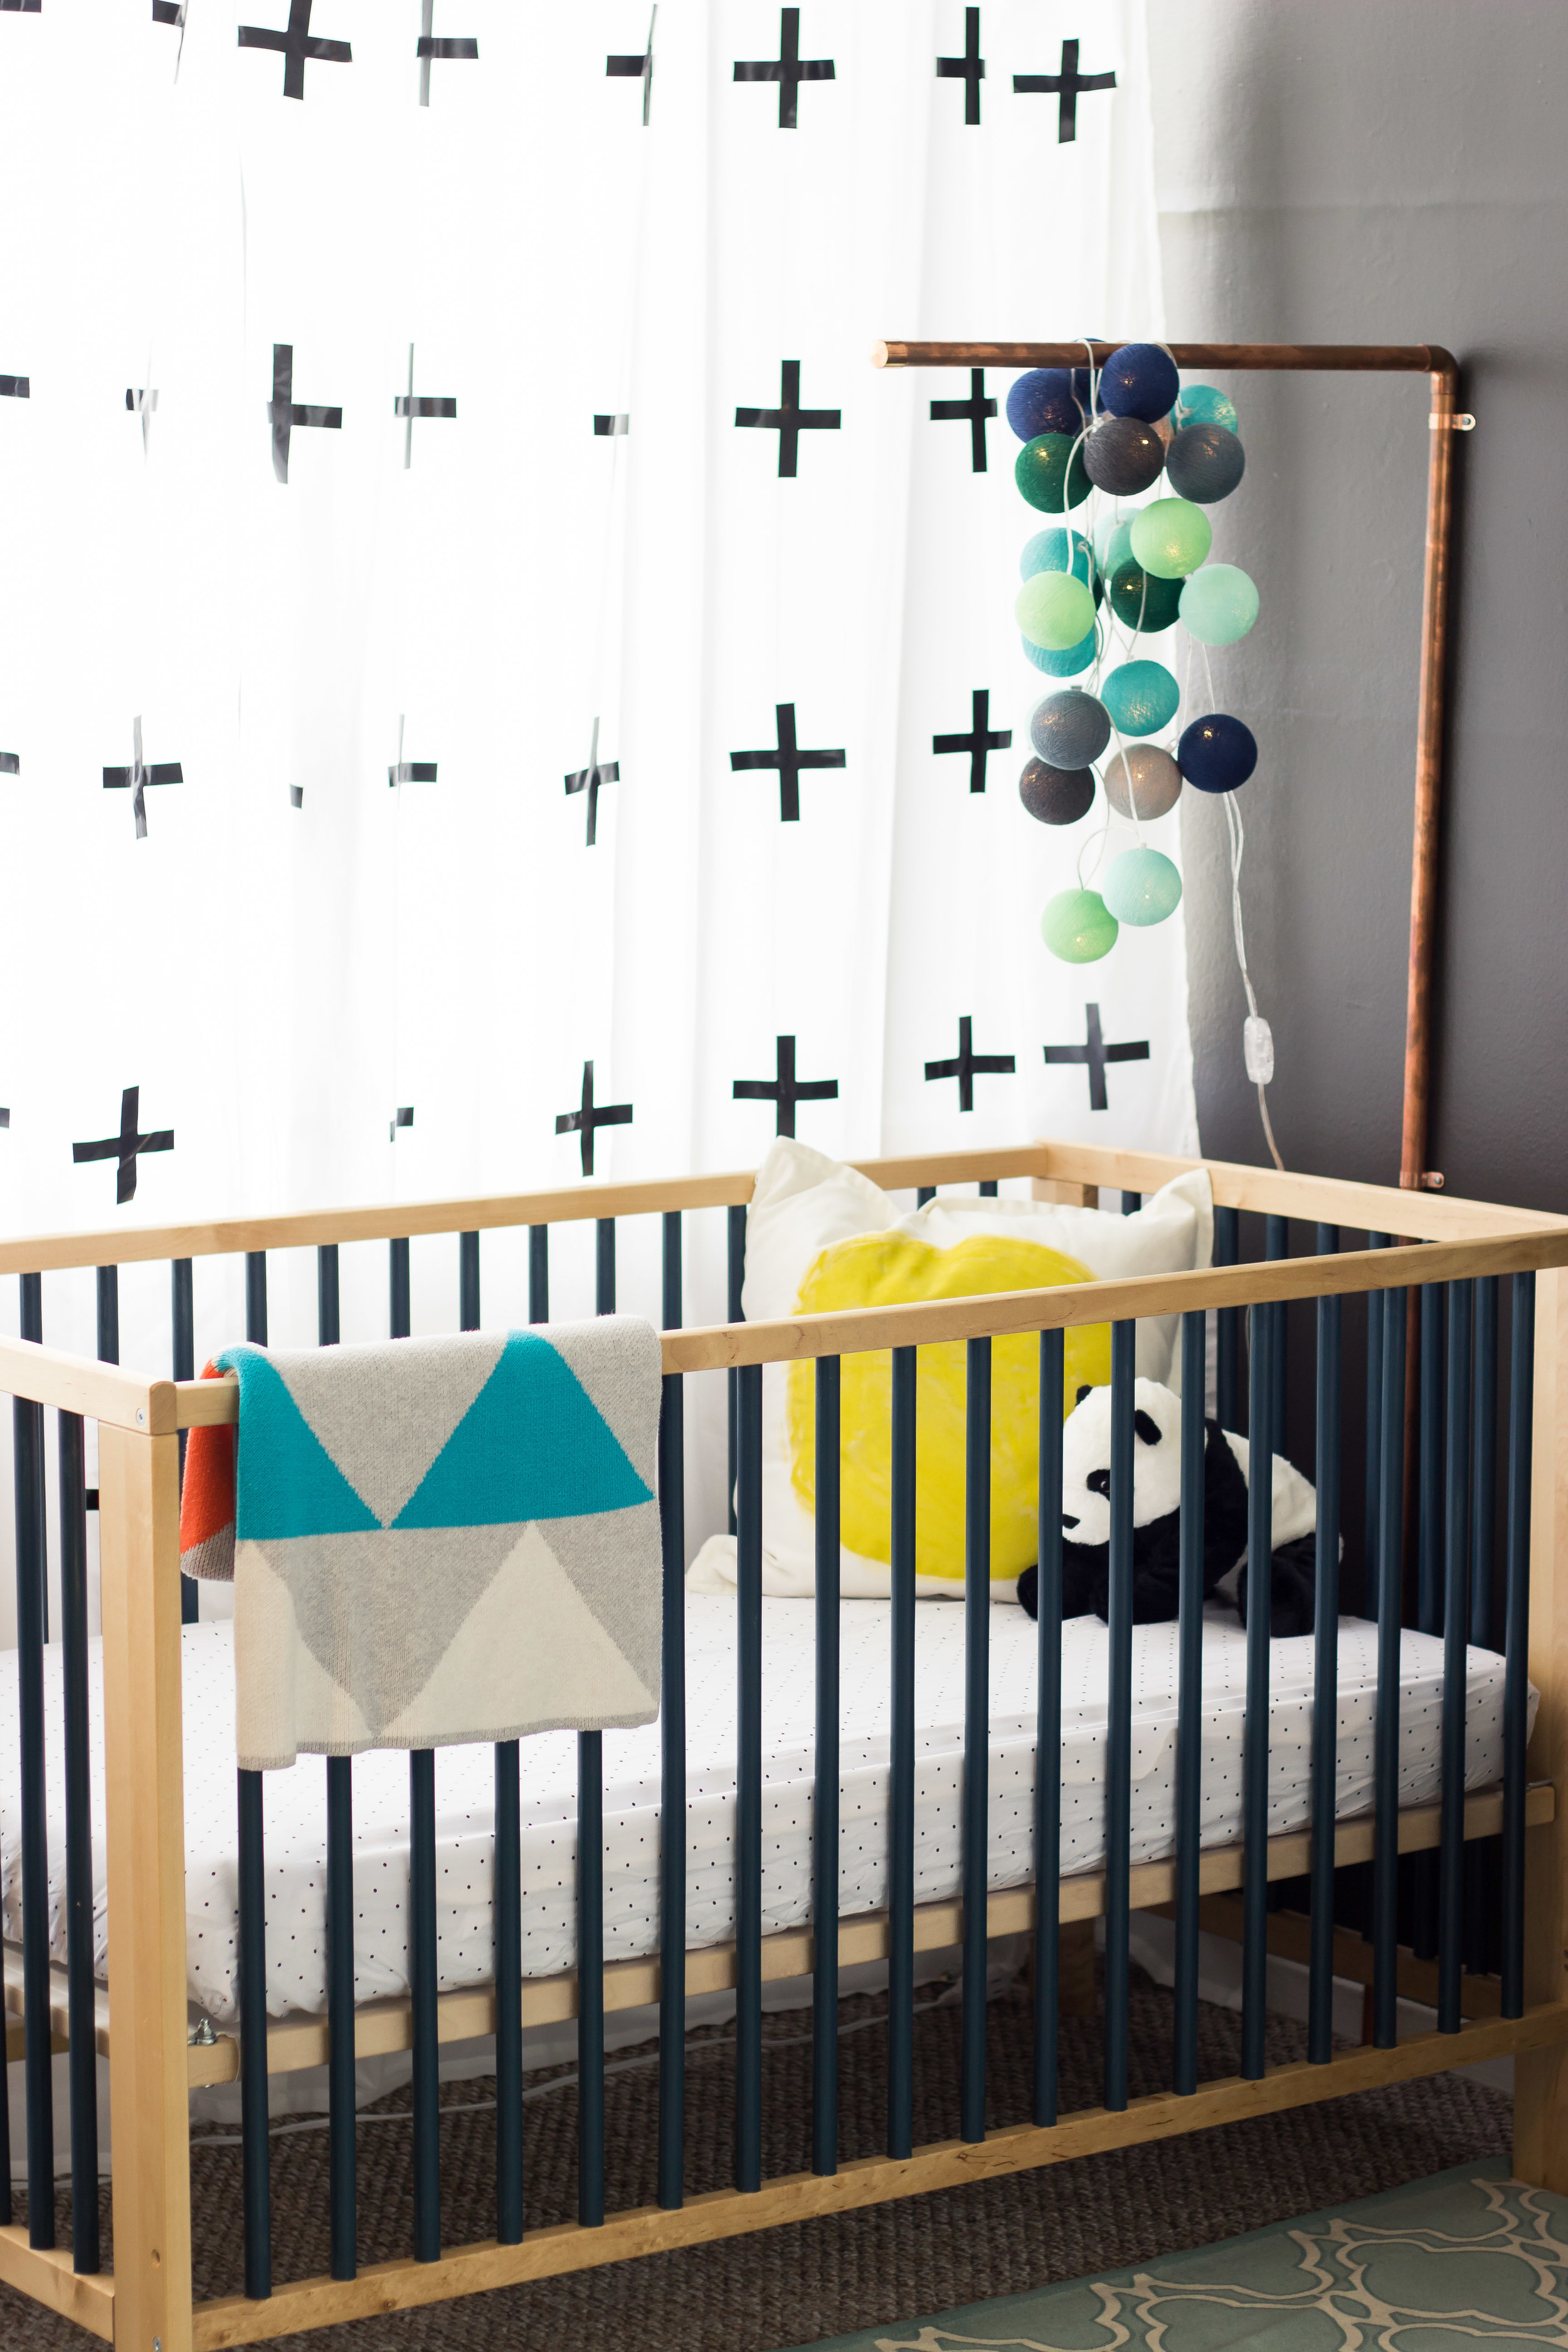 I loved the look of cribs with painted slats only problem was those cribs were way out of my price range so i got the ikea gulliver crib in natural wood